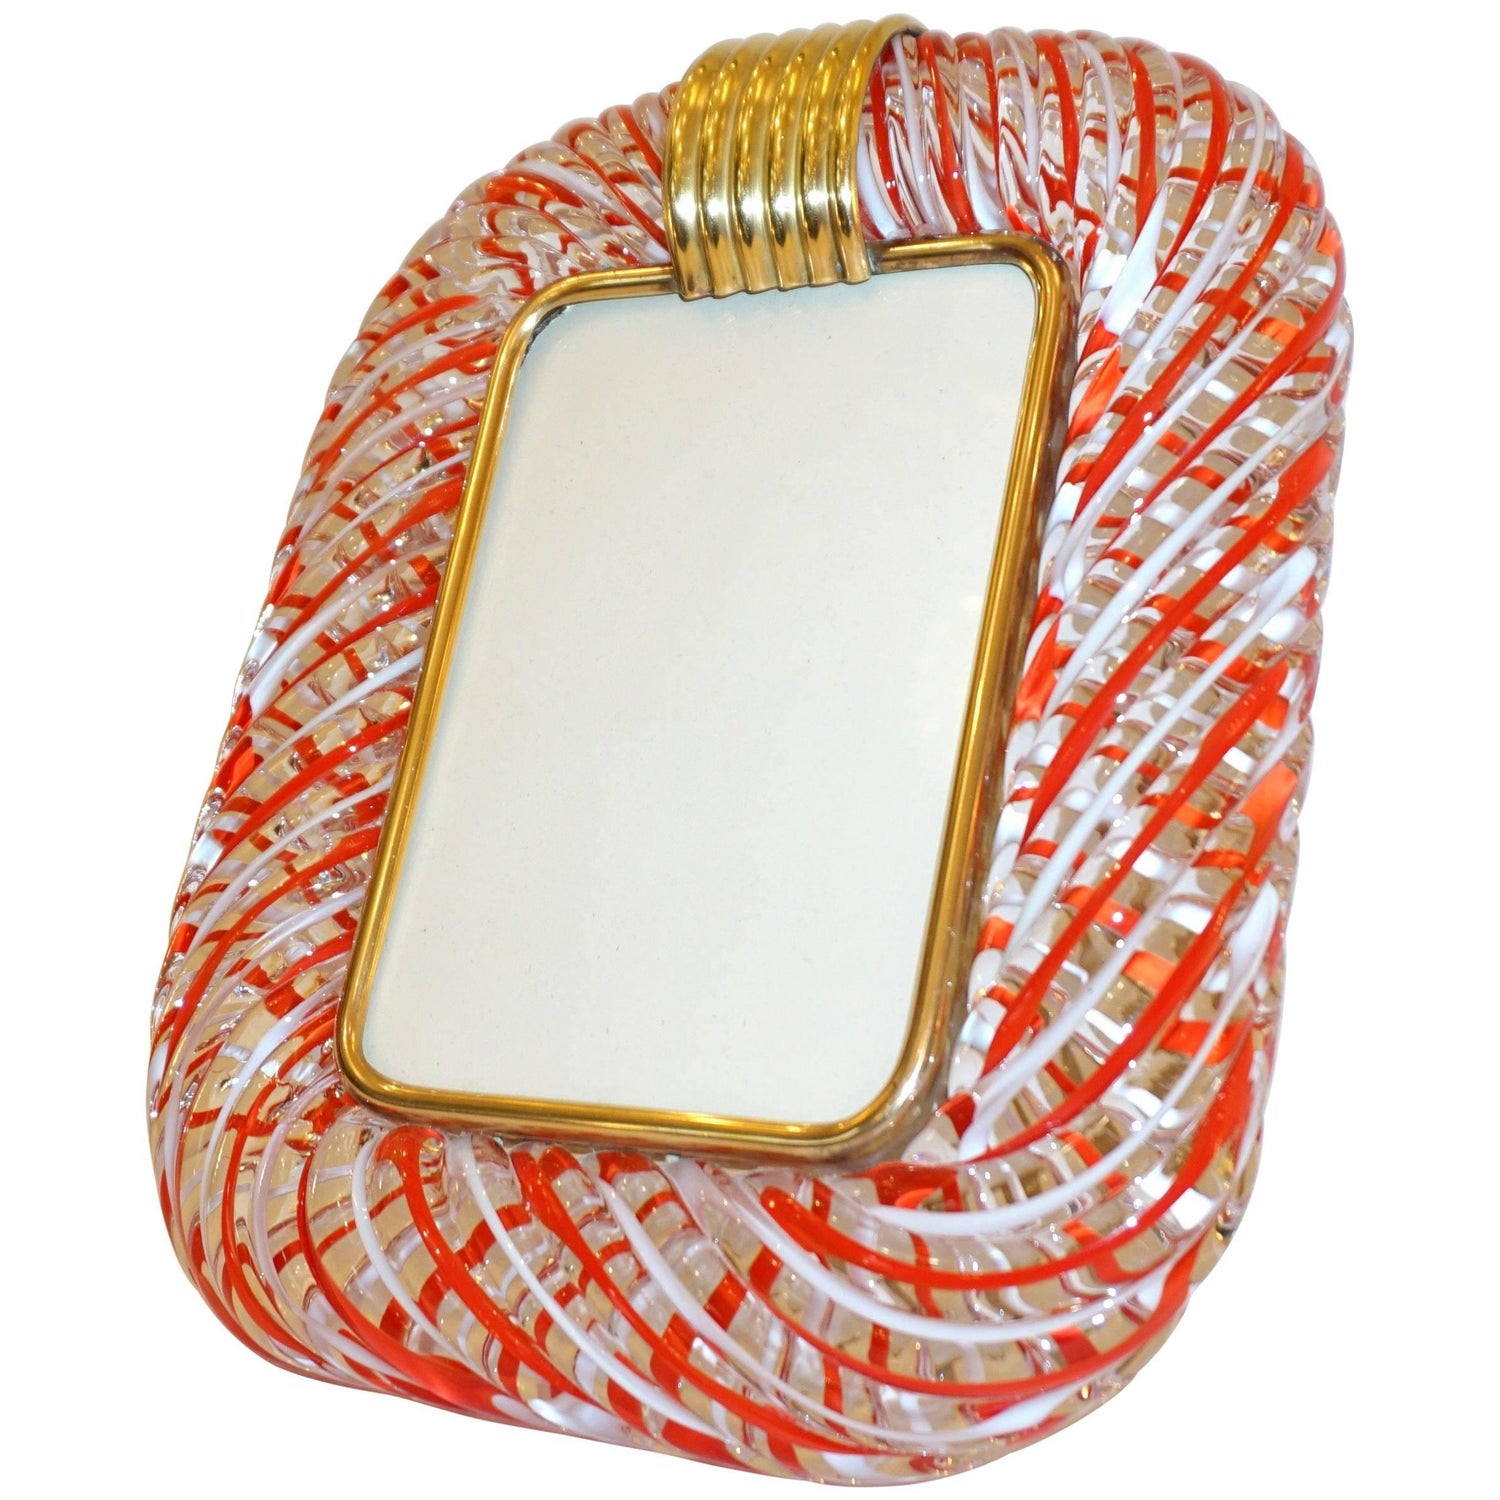 Venini picture frames 18 for sale at 1stdibs venini 1970s vintage italian red white and crystal murano glass photo frame jeuxipadfo Gallery